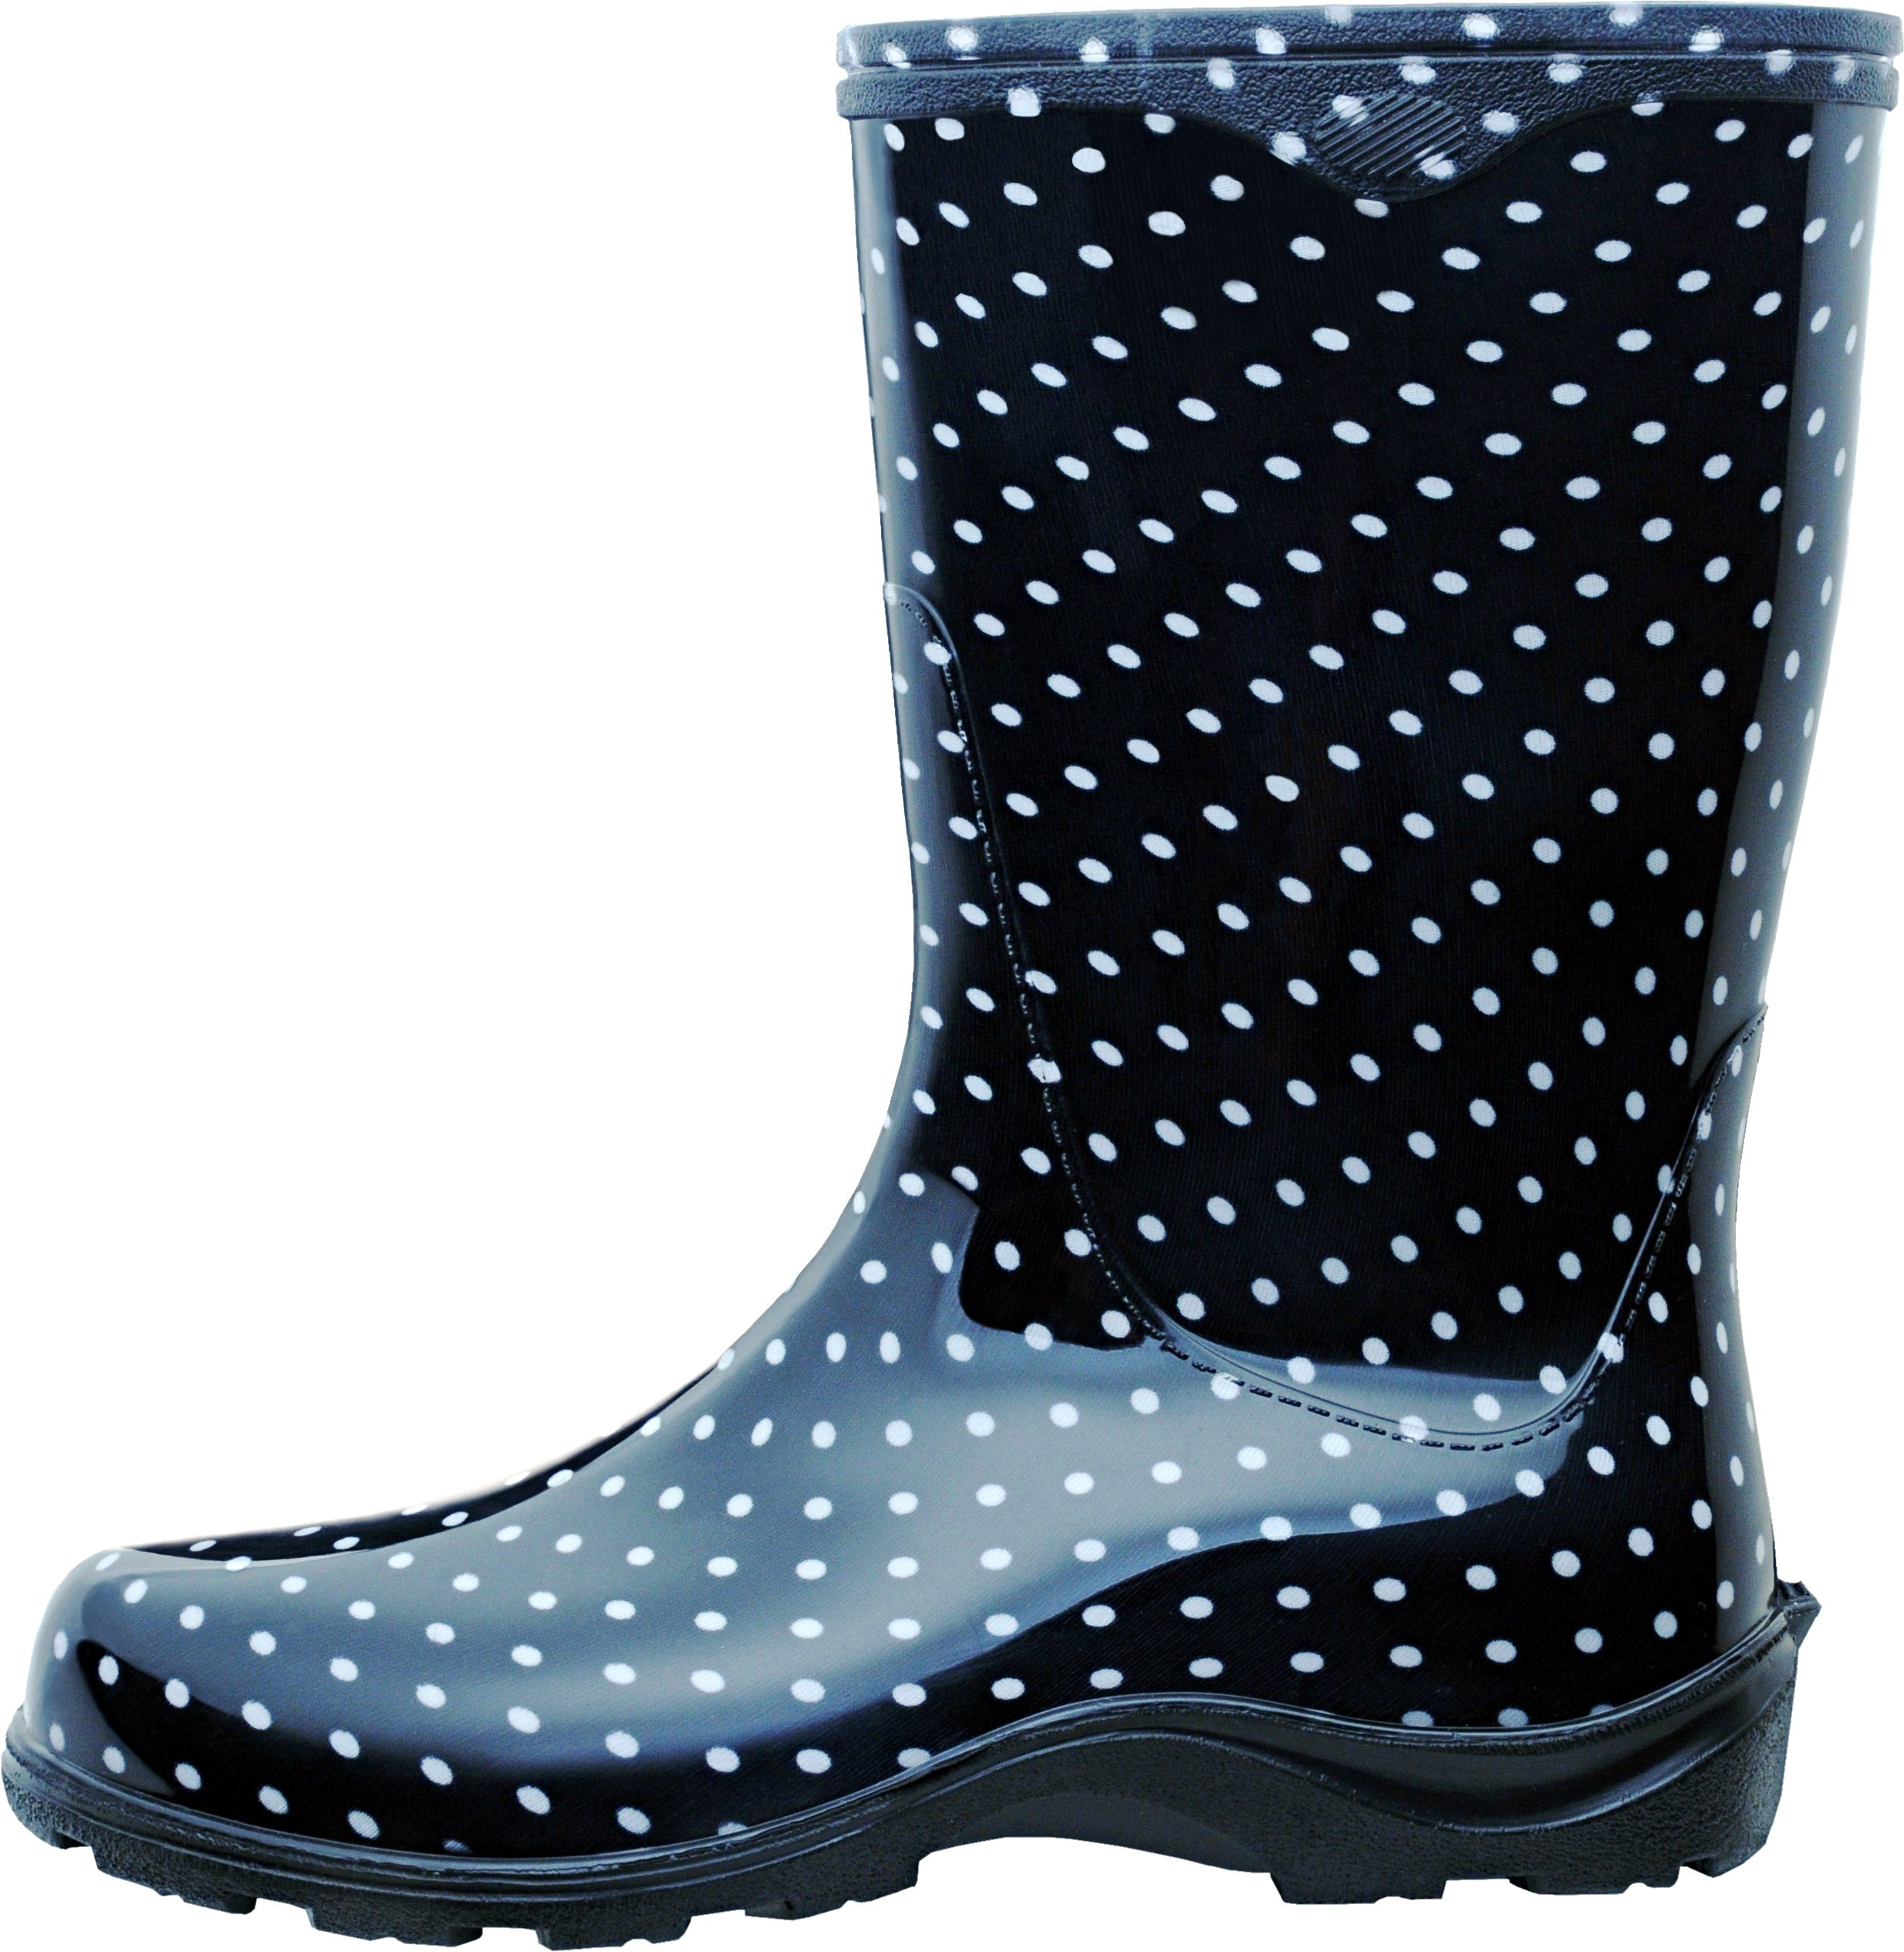 Sloggers Women's Waterproof Rain and Garden Boot with Comfort Insole, Black/White Polka Dot, Size 8, Style 5013BP08 by Sloggers (Image #6)